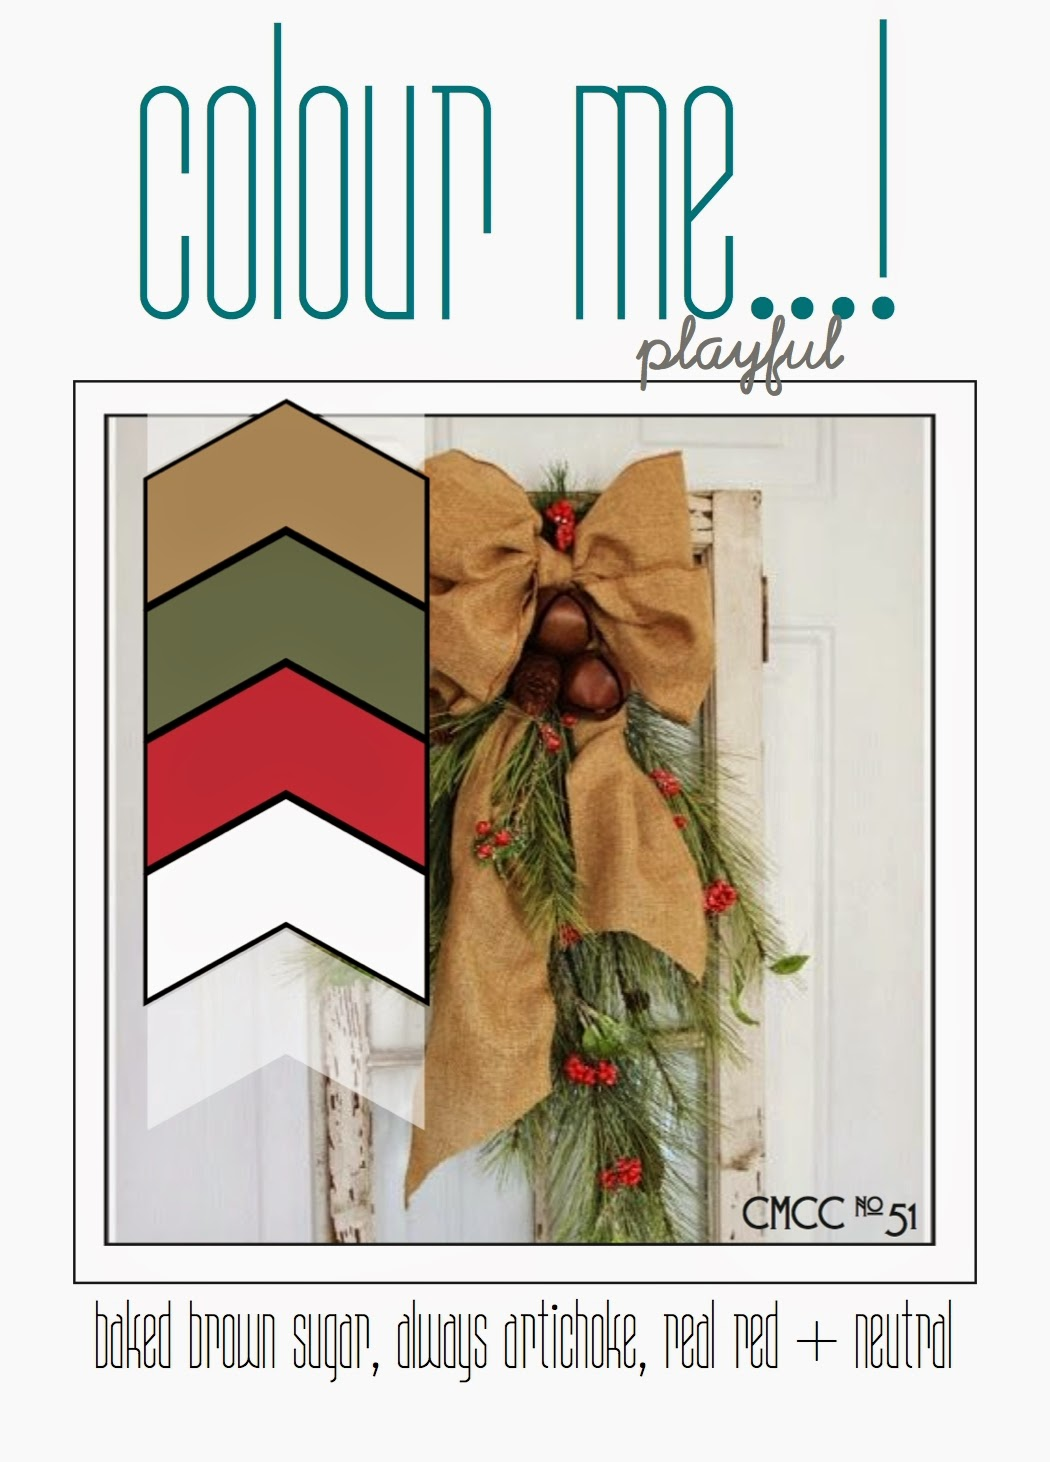 http://colourmecardchallenge.blogspot.com/2014/12/cmcc51-colour-me-merry.html